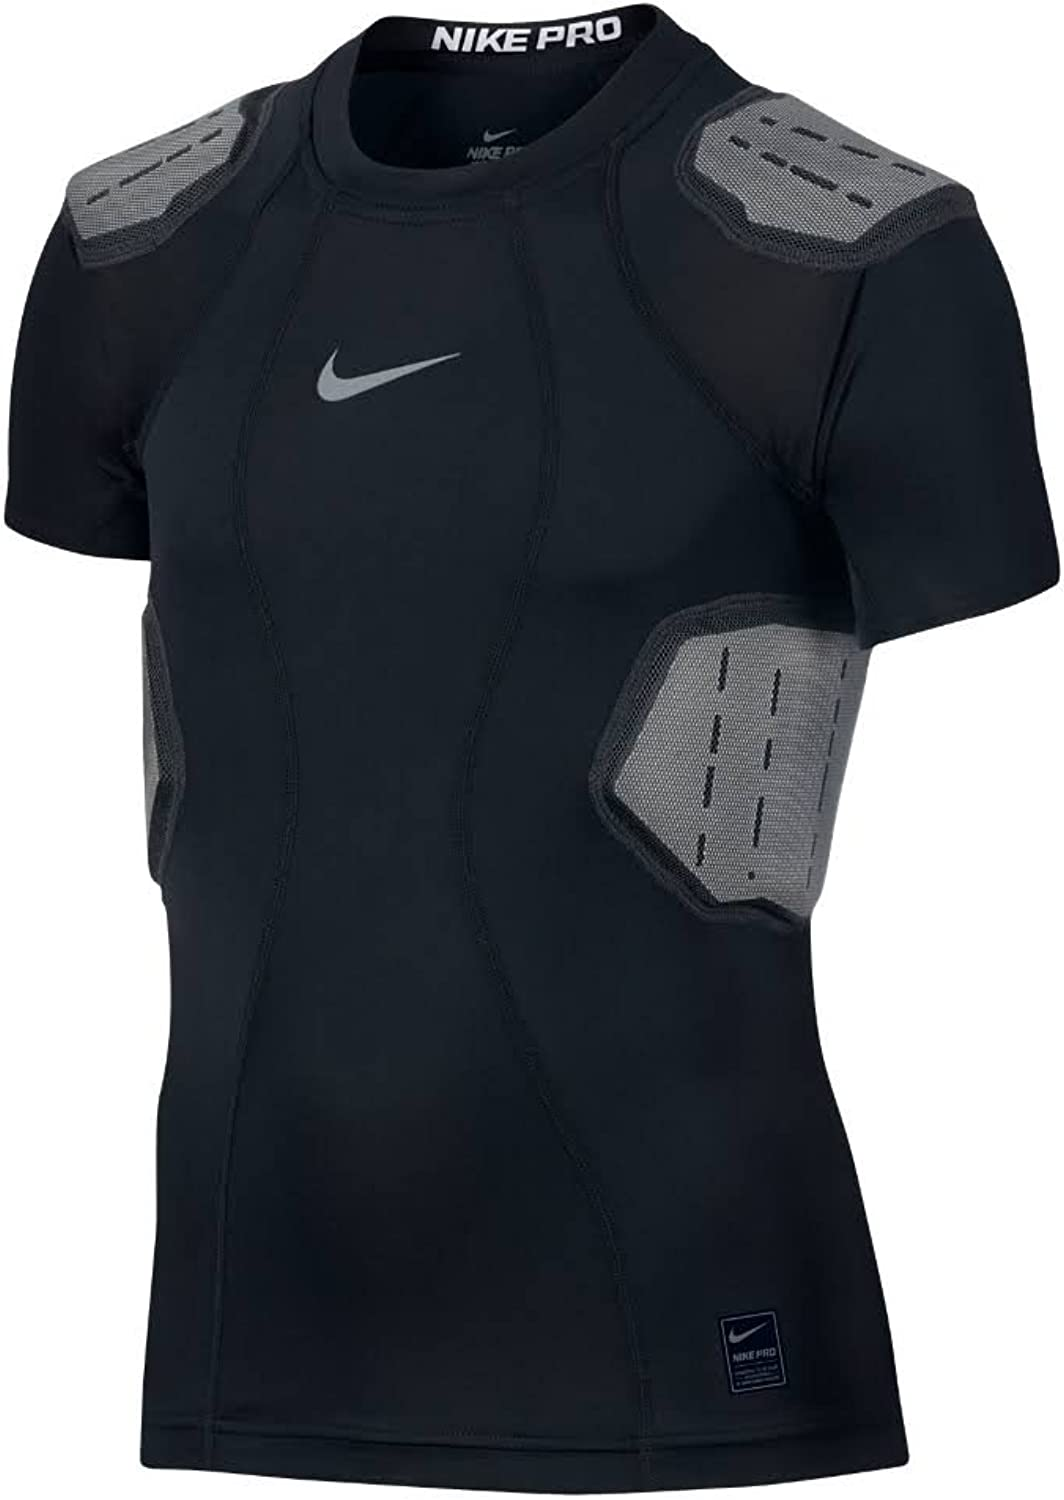 Nike 4-Pad Hyperstrong Core Compression Dri-Fit Youth Football Shirt (XL) schwarz